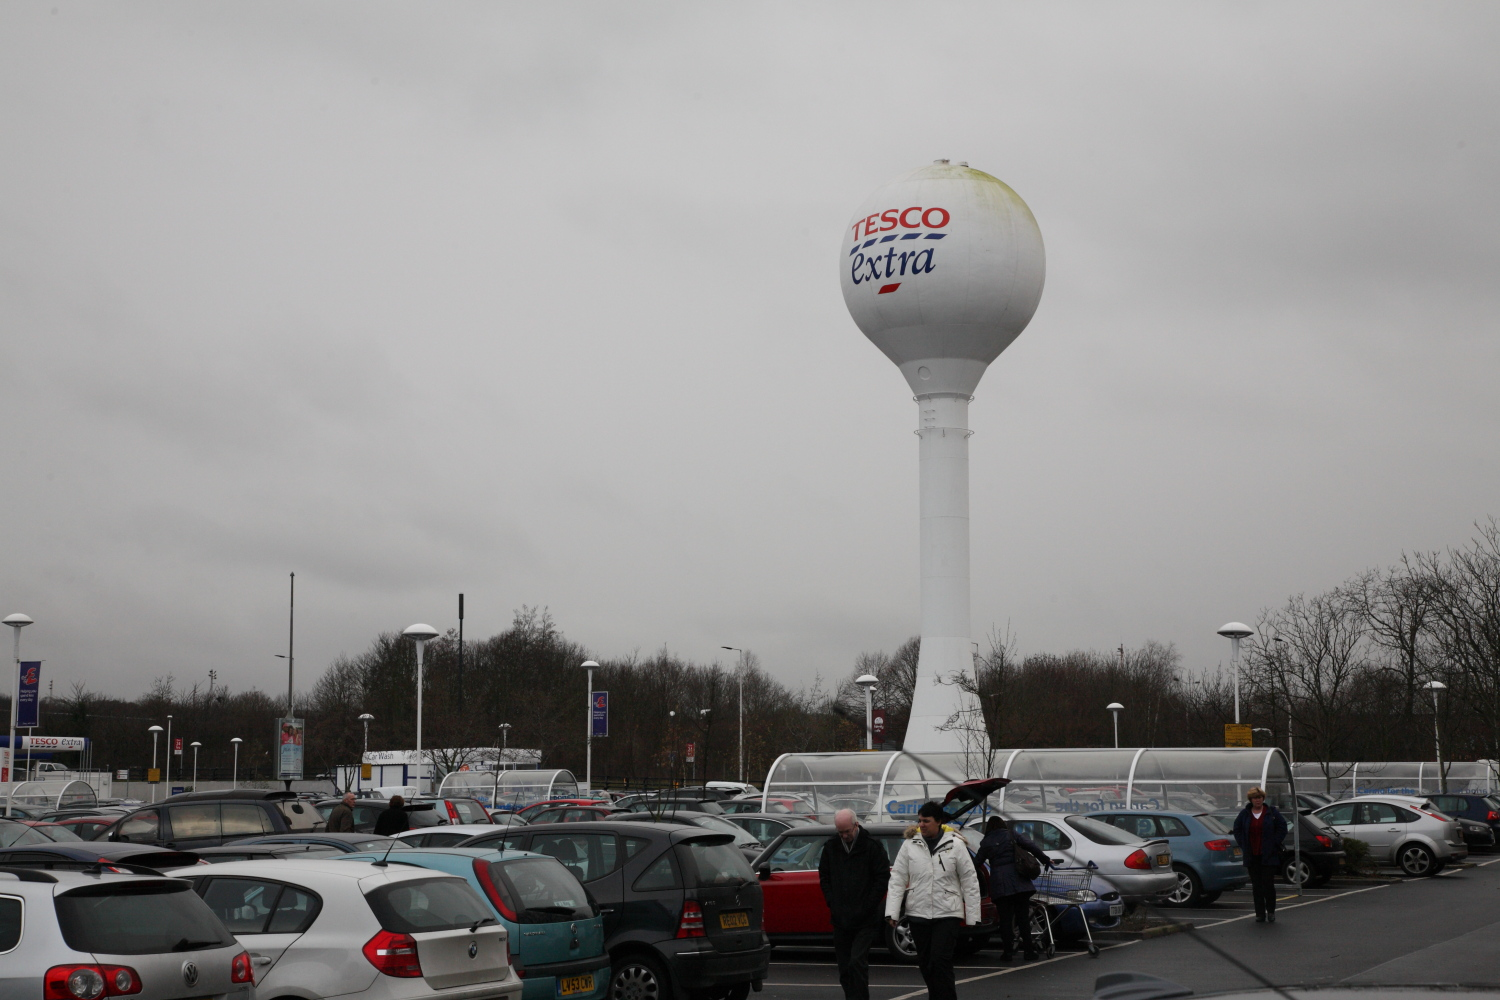 Tesco Extra Rainham/Gillingham - Bowaters Rainham Mark